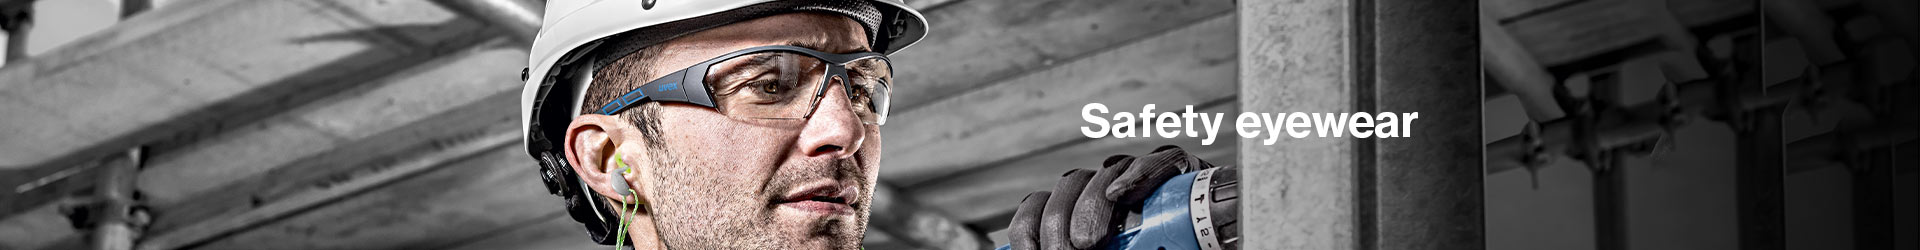 uvex safety eyewear